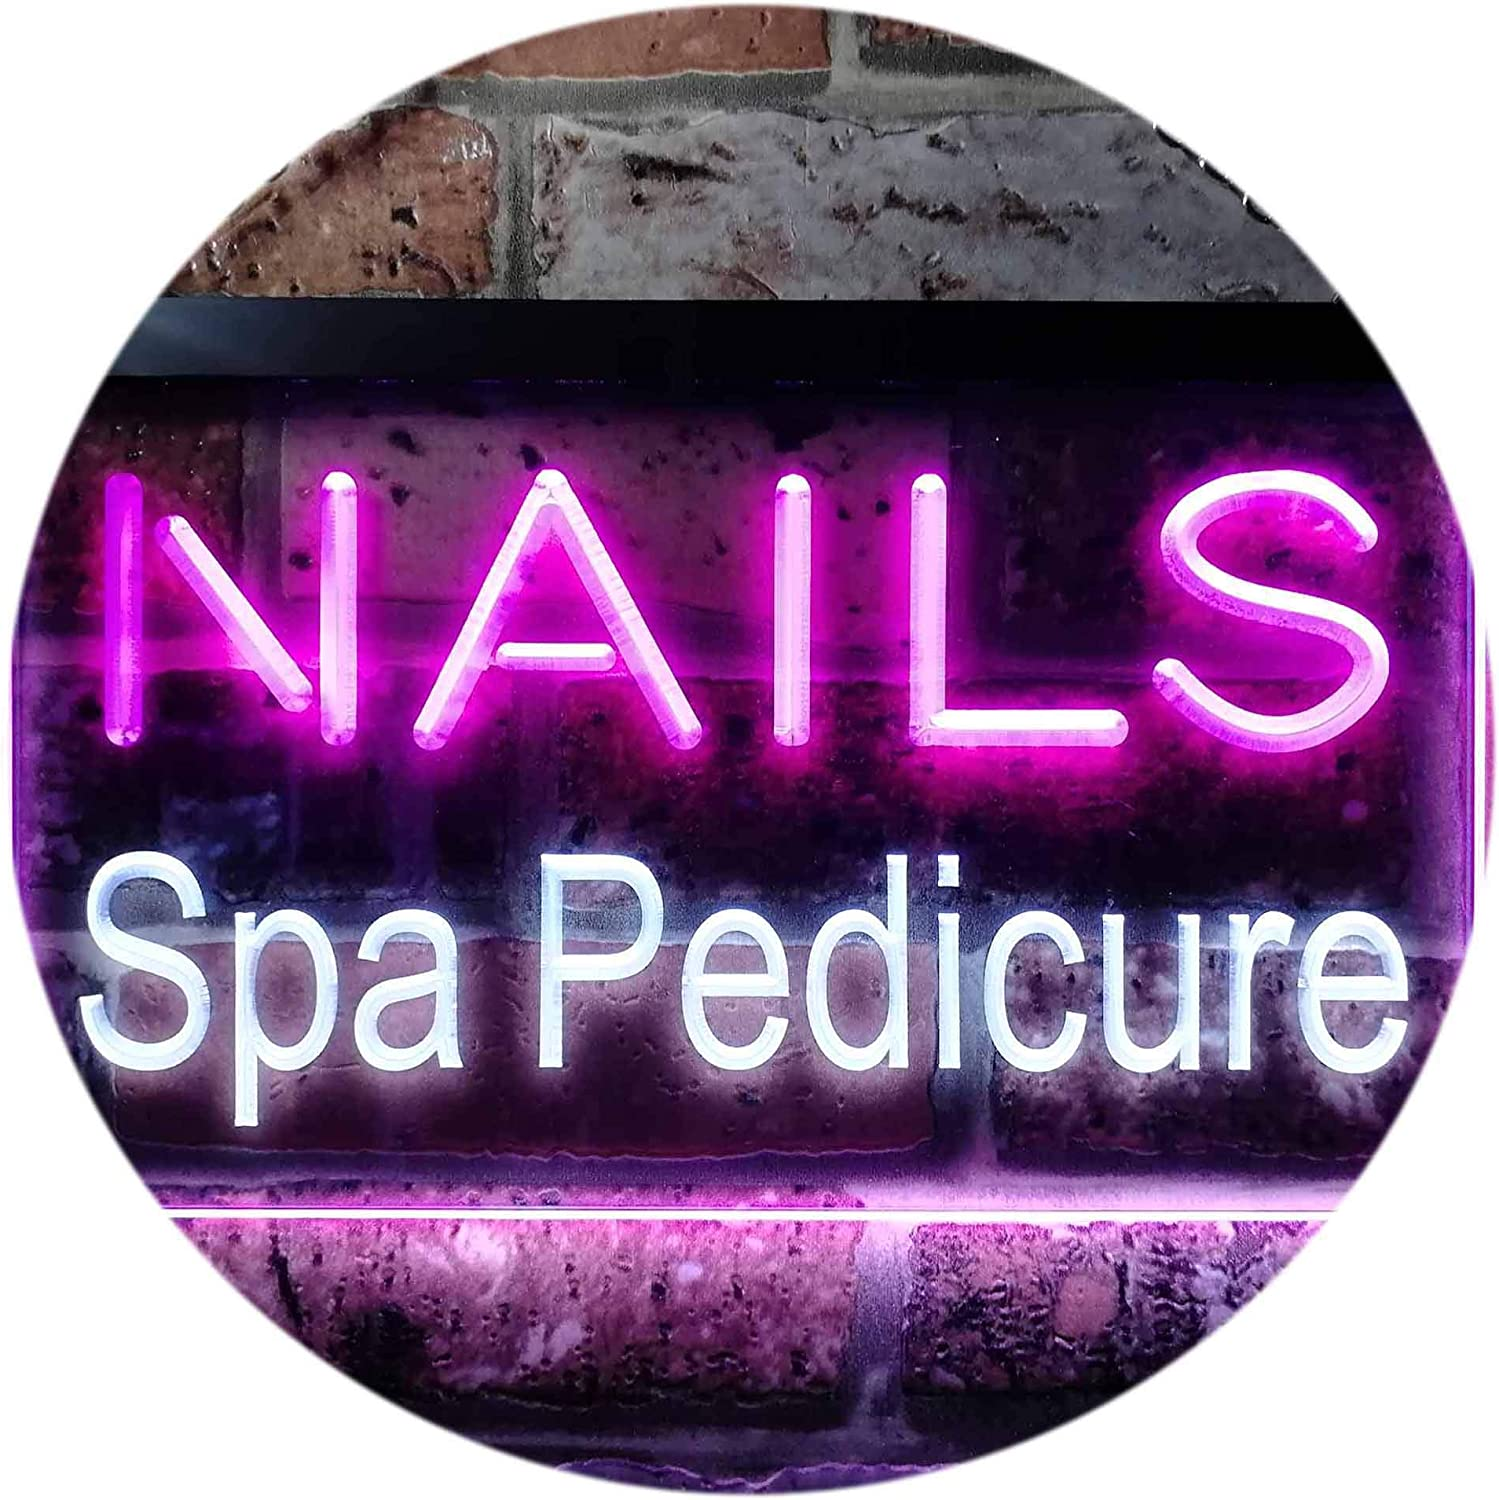 ADVPRO Nails Spa Pedicure Beauty Salon Dual Farbe LED Barlicht Neonlicht Lichtwerbung Neon Sign Weiß & lila 400mm x 300mm st6s43-i0357-wp